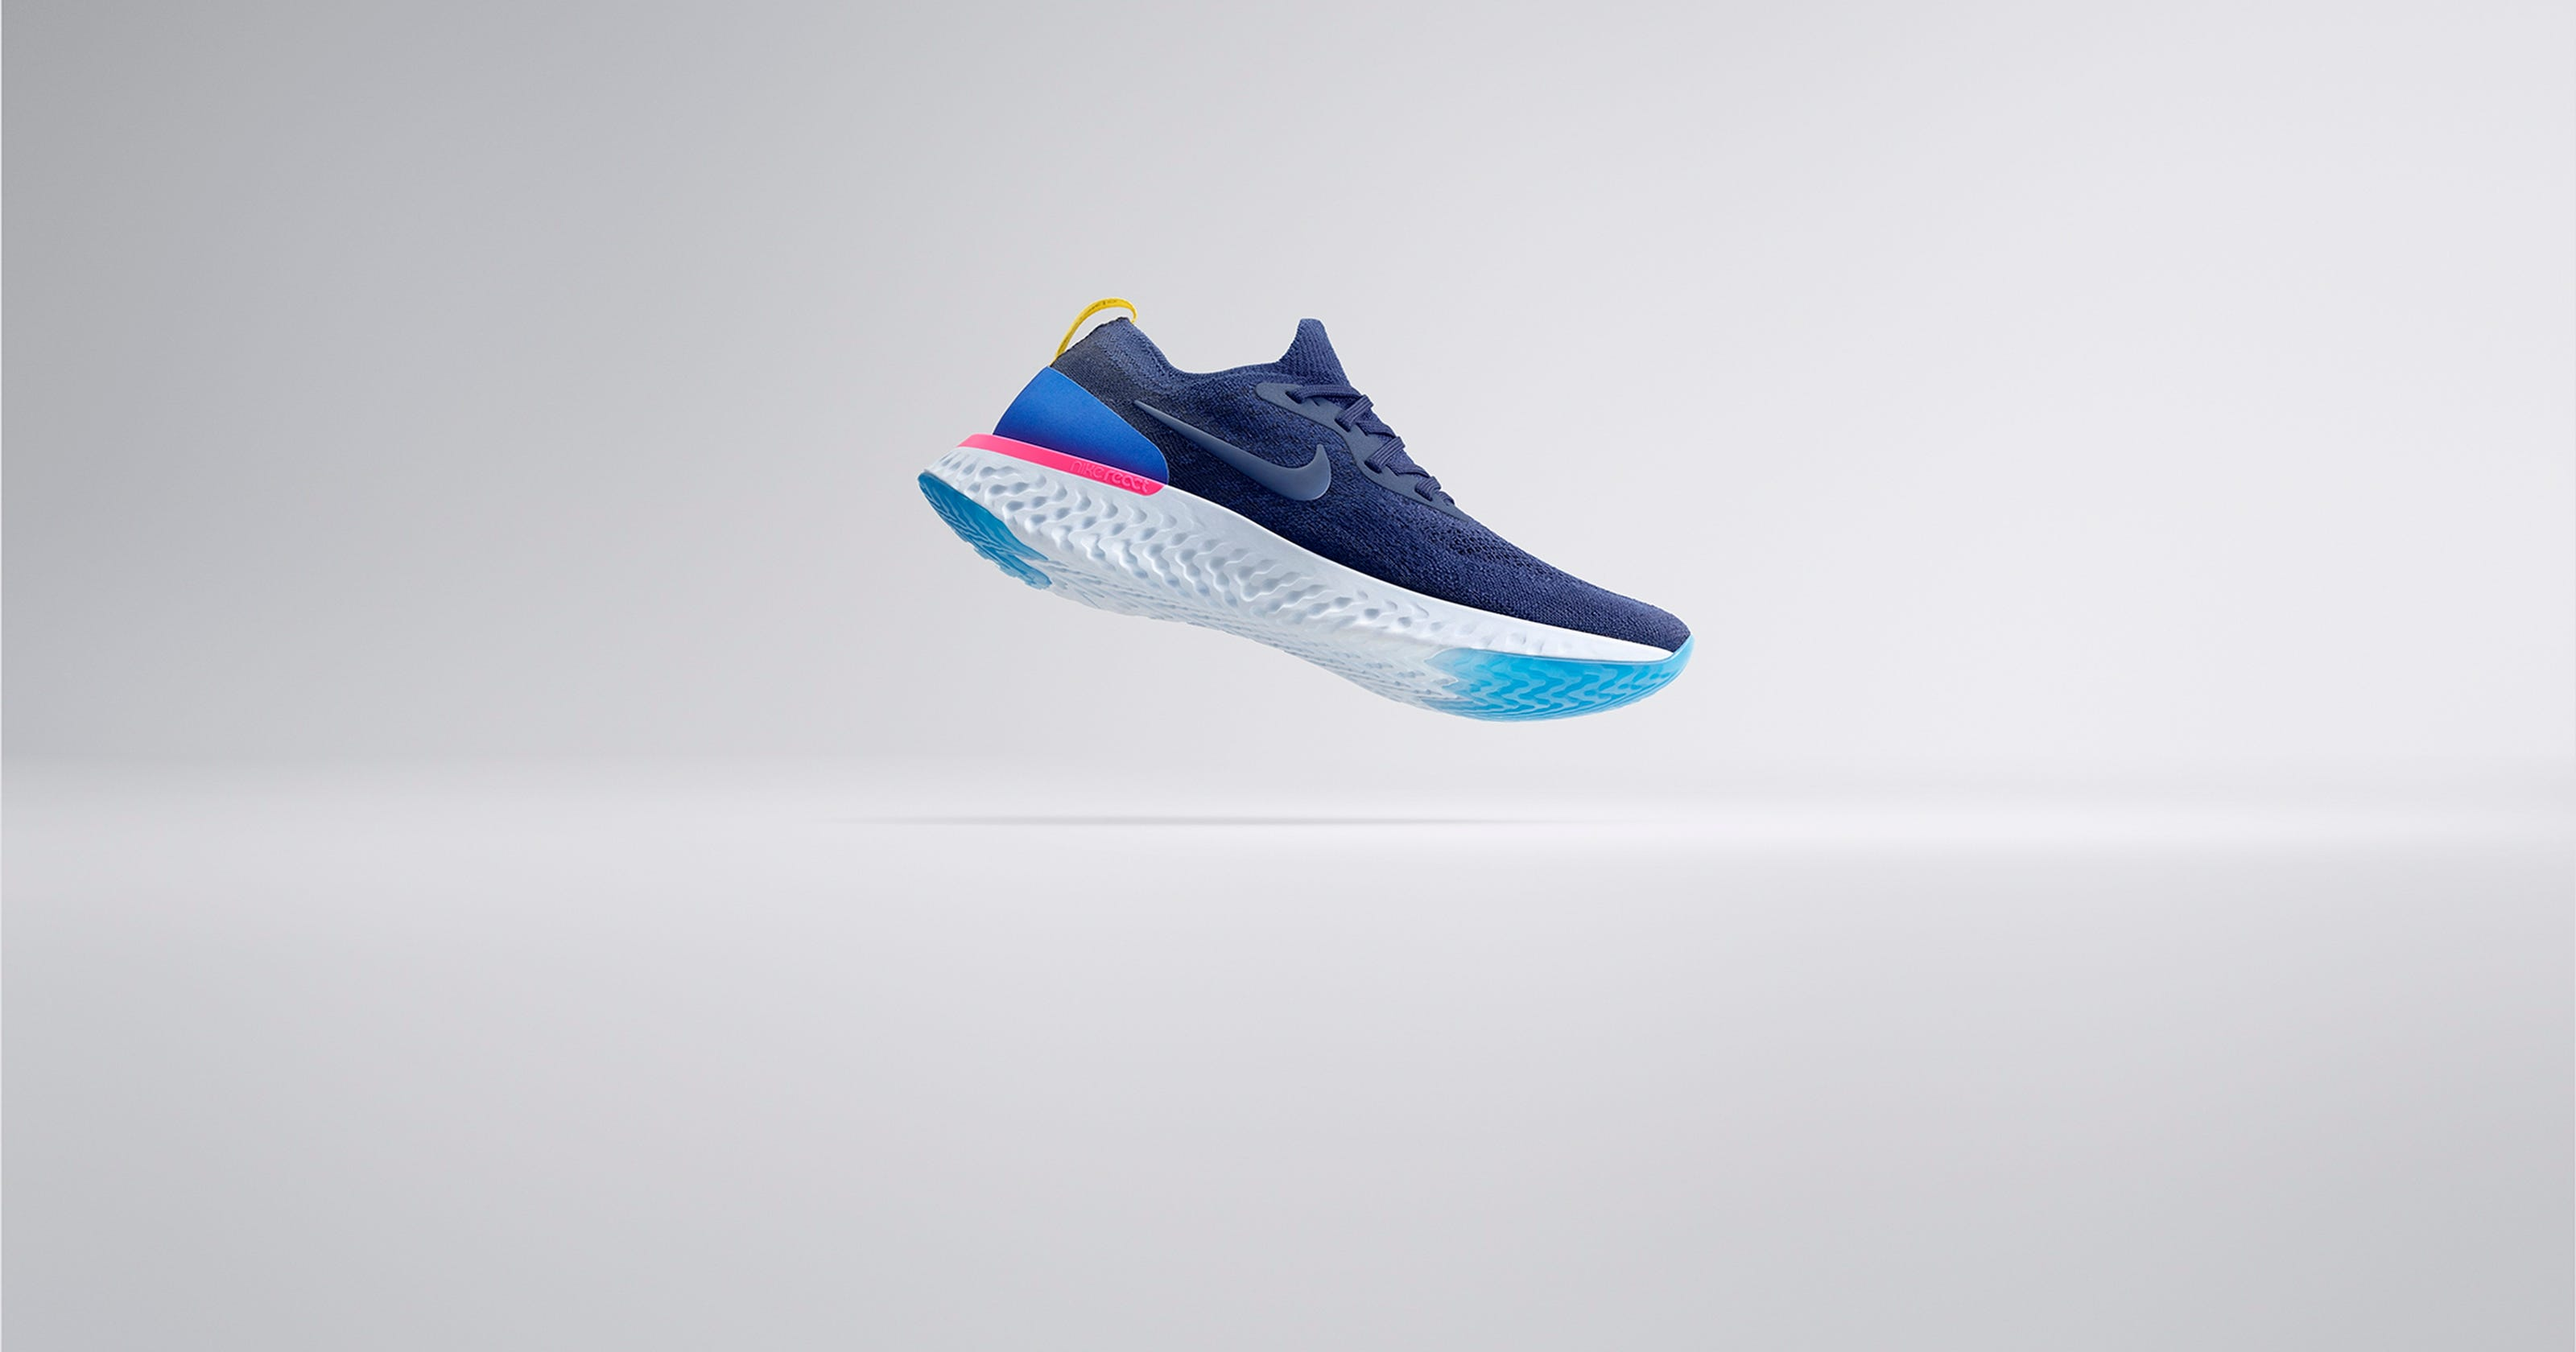 0cec8b85bd09 Nike unveils the Nike Epic React Flyknit